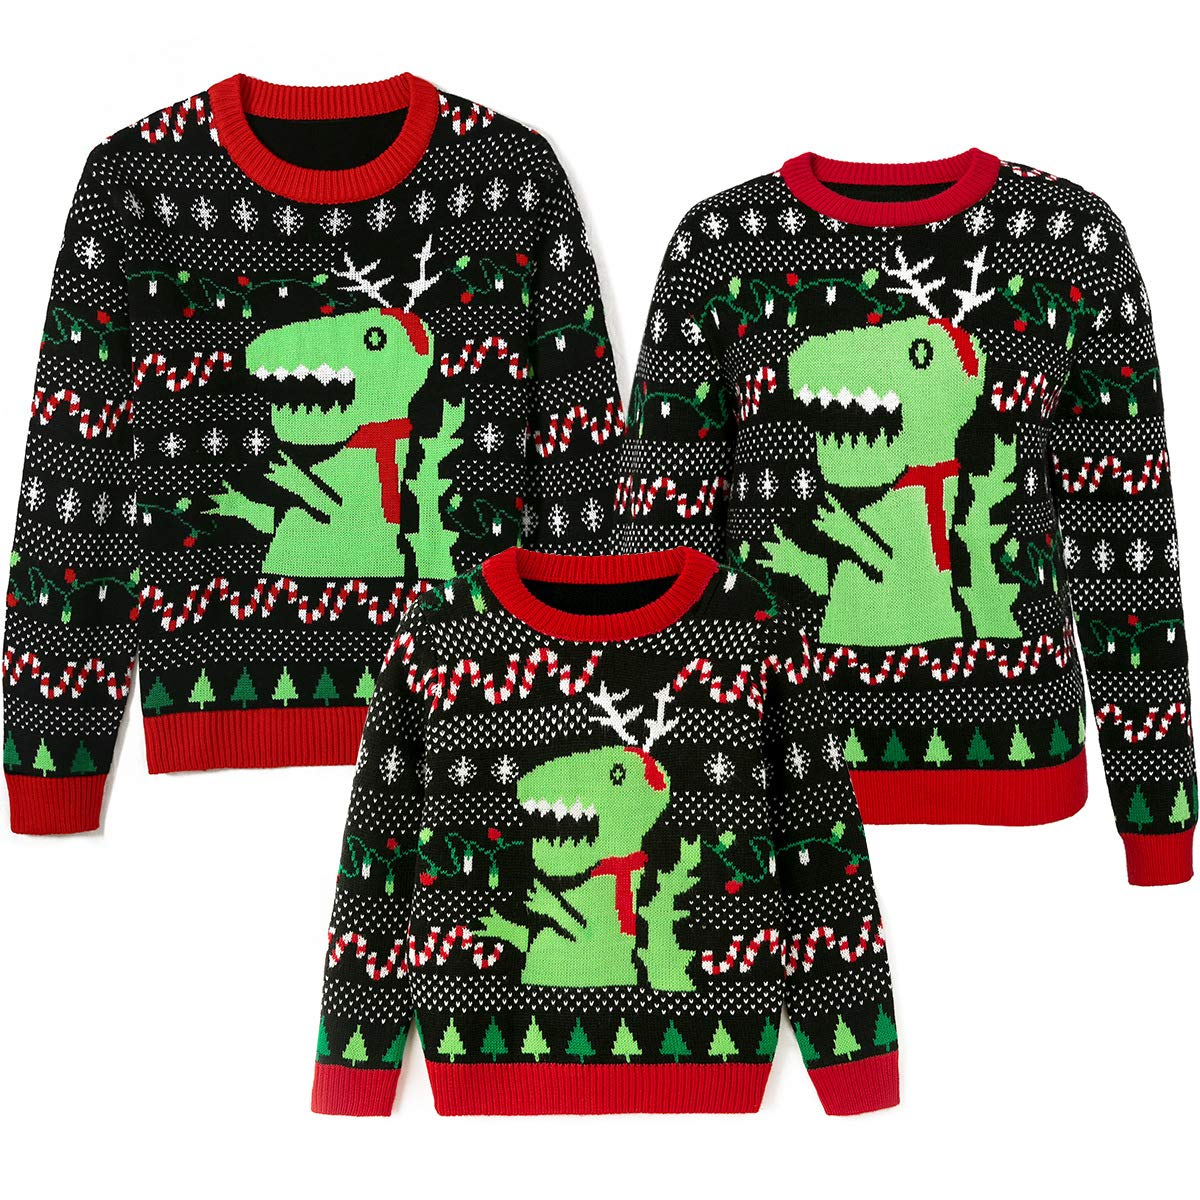 Simplee kids Ugly Christmas Sweater Family Matching Outfits for Holiday Party Knitted Pullover for Winter 3T Kids by Simplee kids